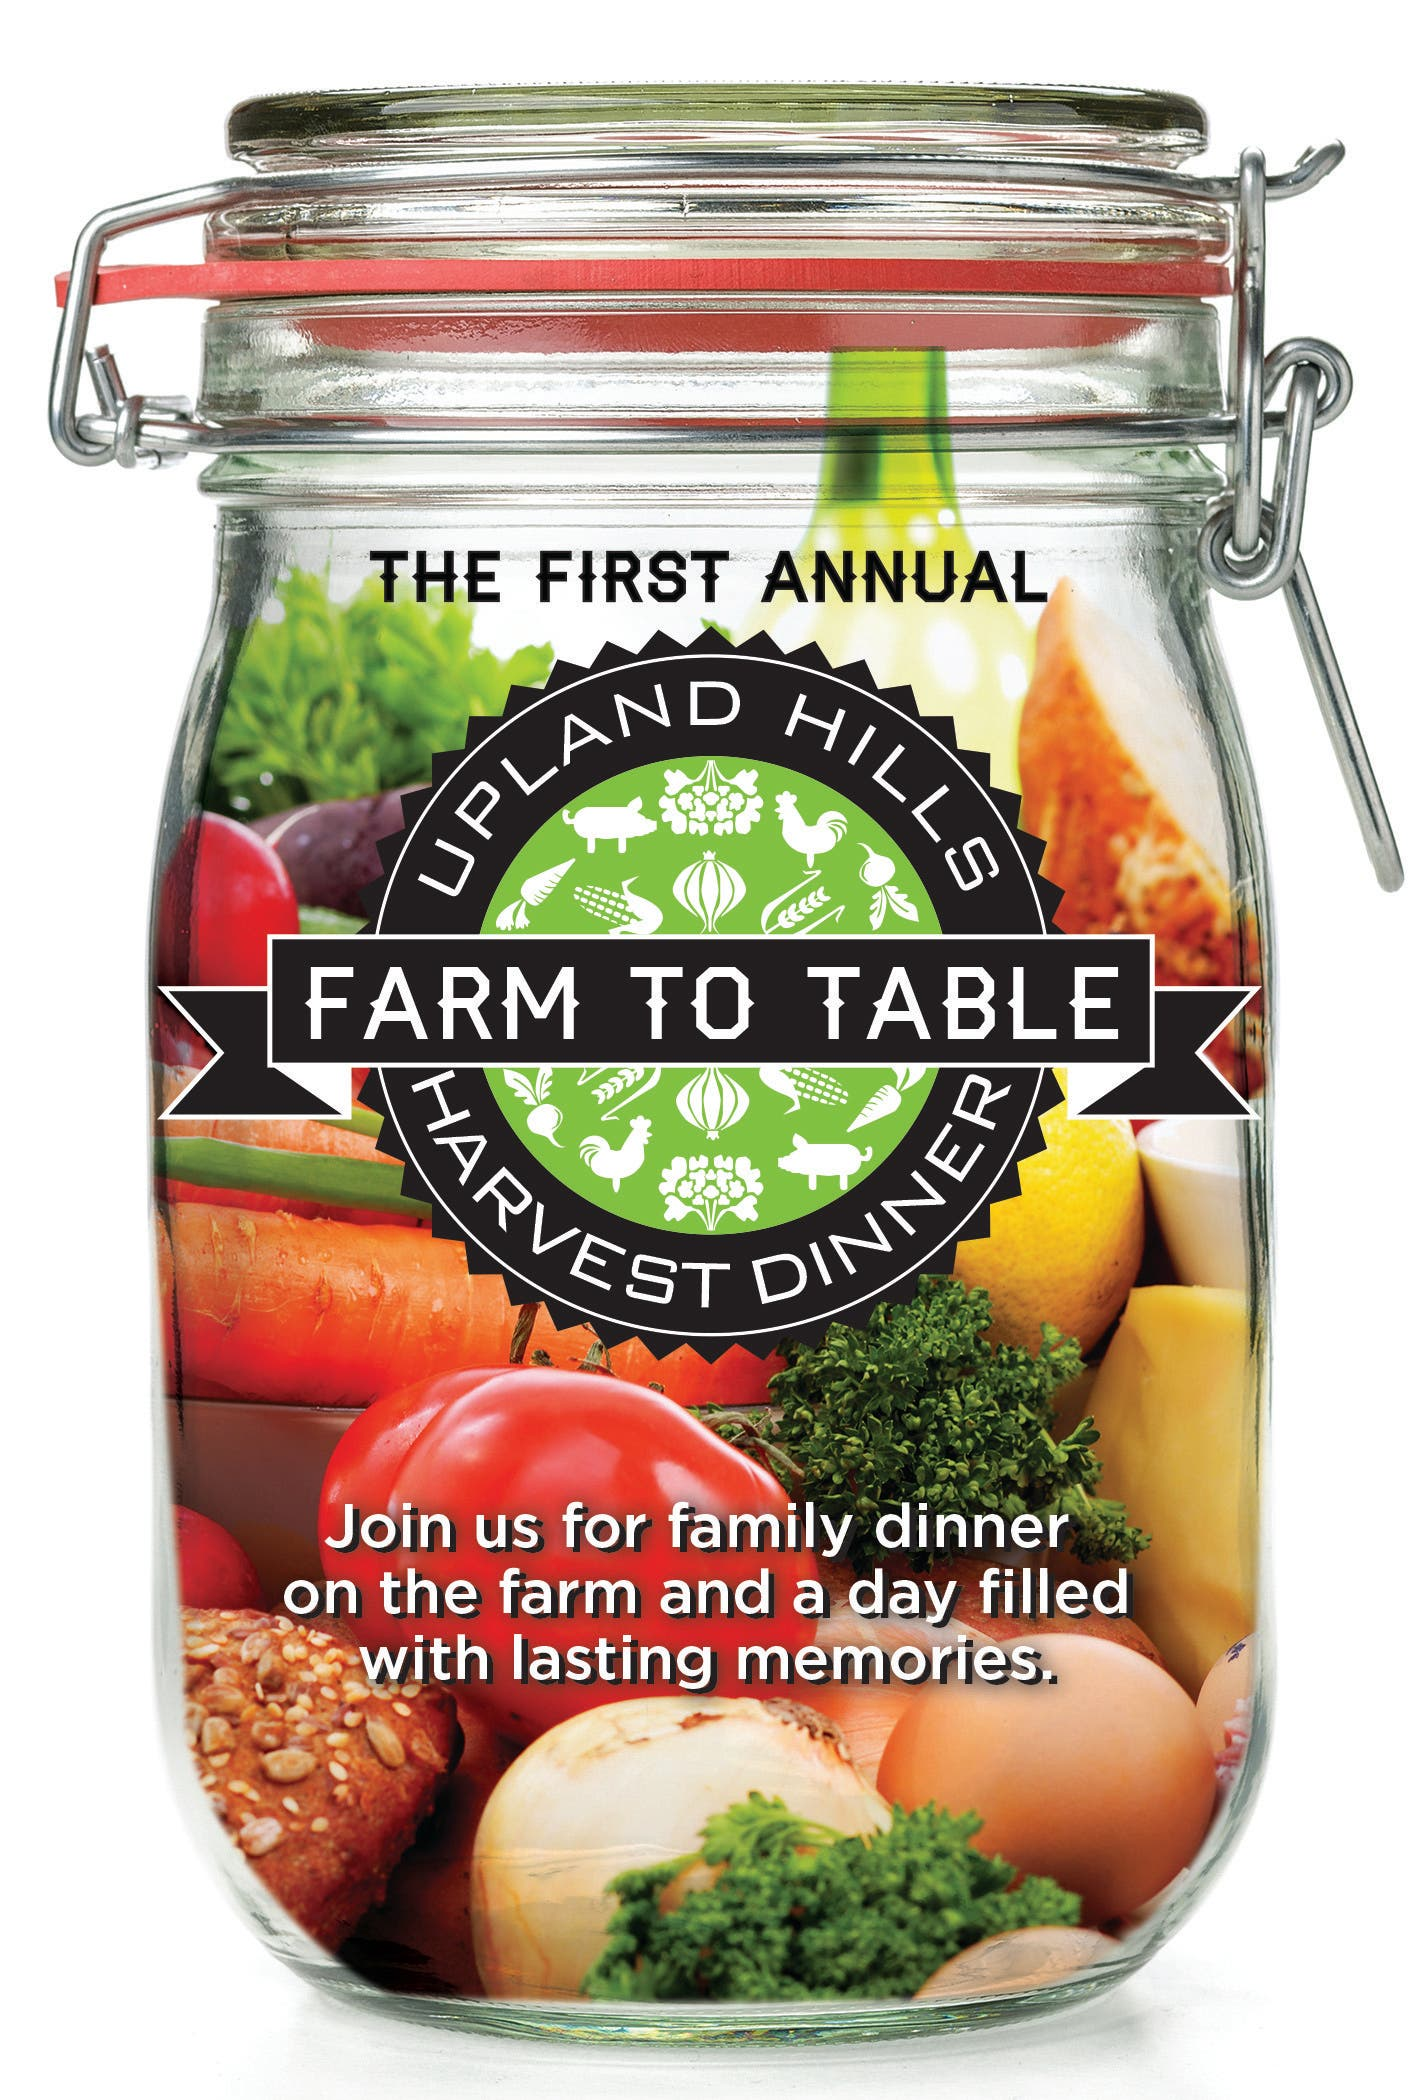 Farm To Table Dinners Feature Top Chefs From Metro